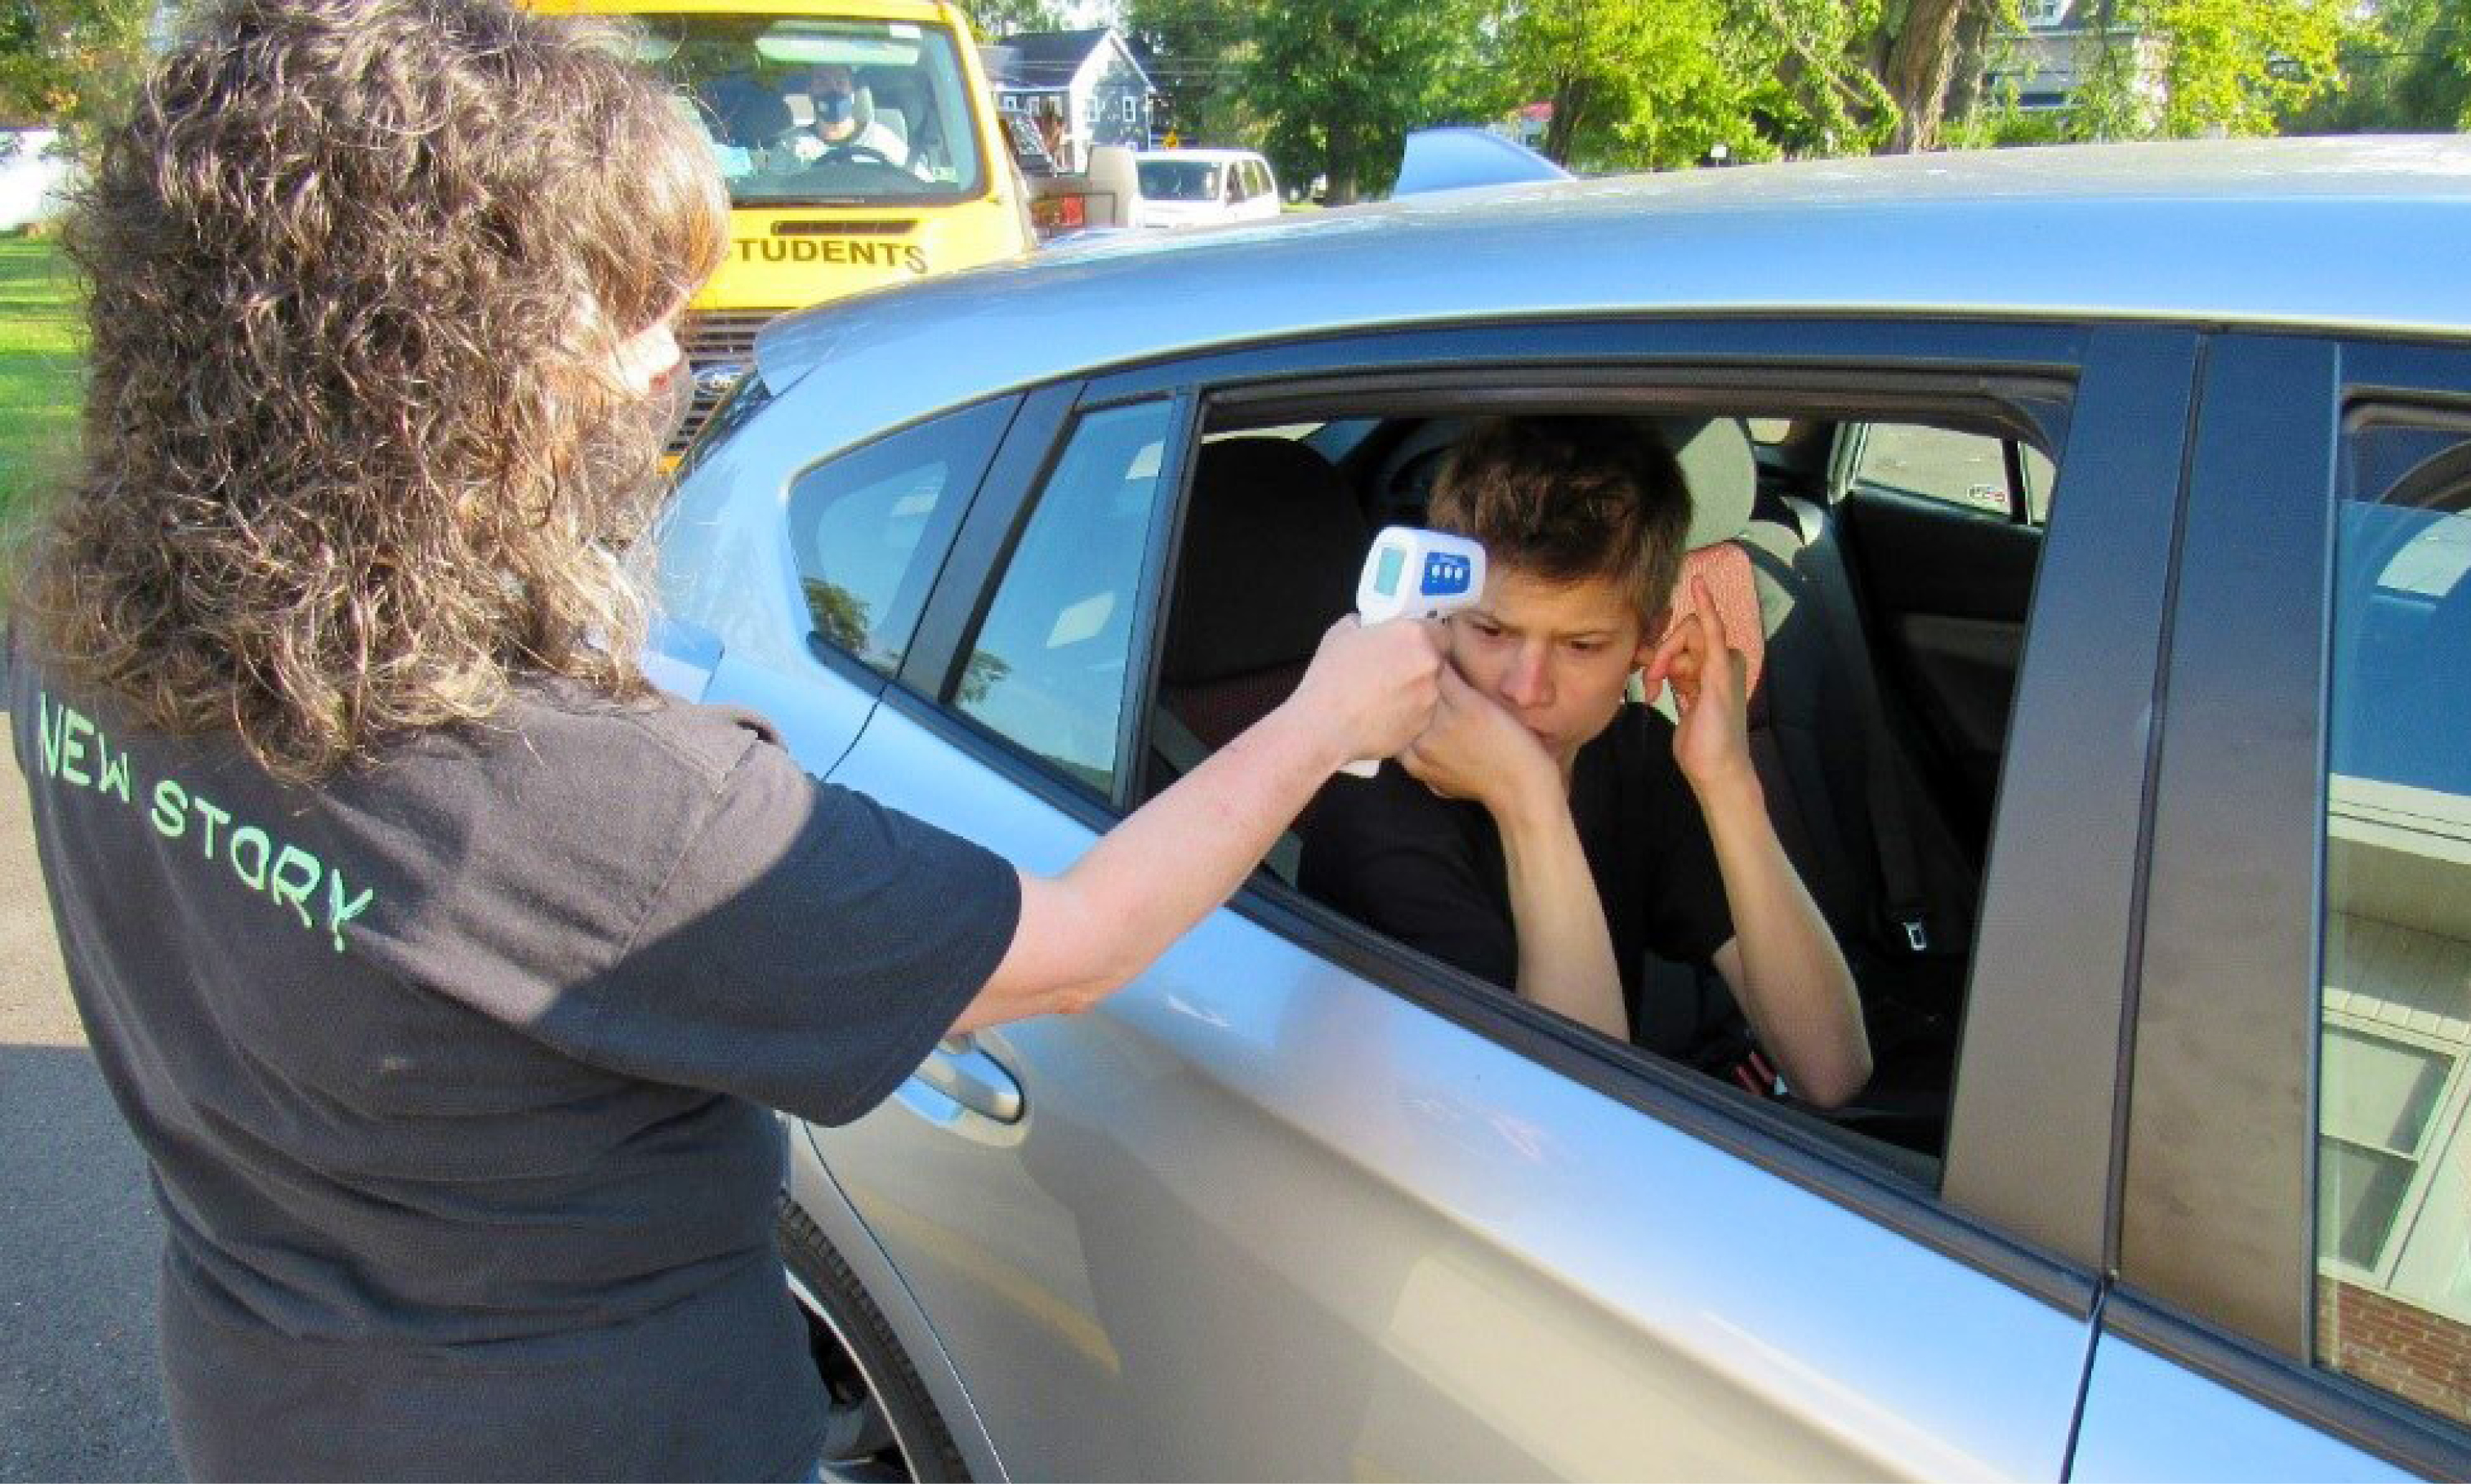 Special education staff performs a temperature check on a special education student sitting in a car.